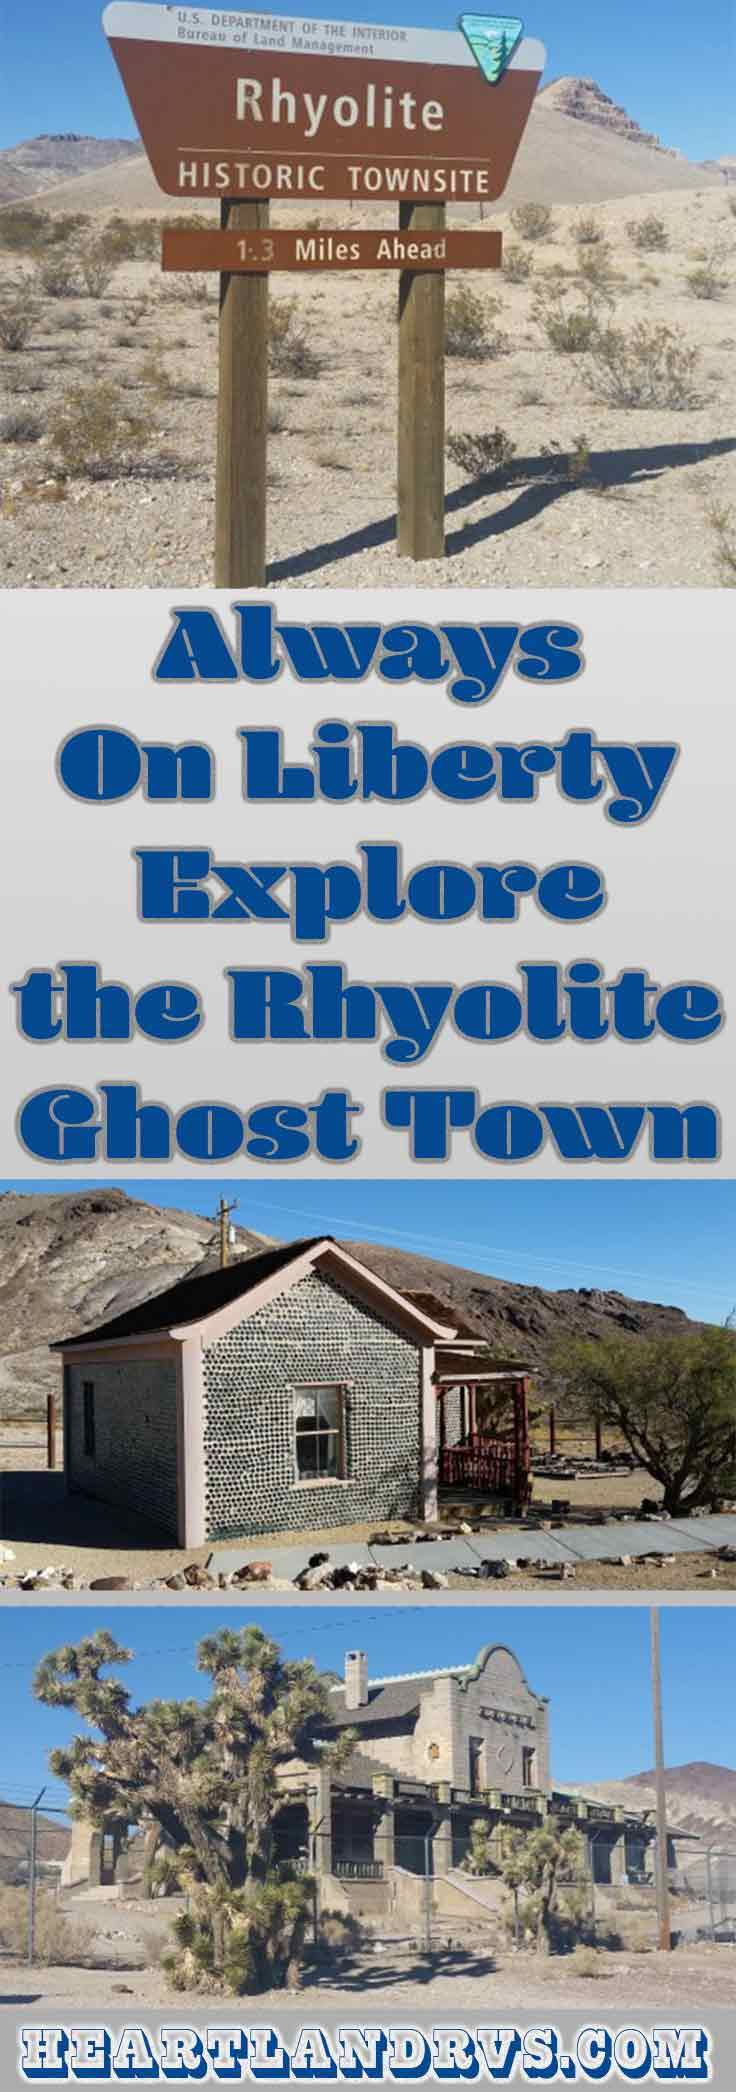 We were eager to see and learn about the Rhyolite ruins of the once lucrative and thriving mining town near Montgomery Shoshone Mine. | Heartland RVs Blog